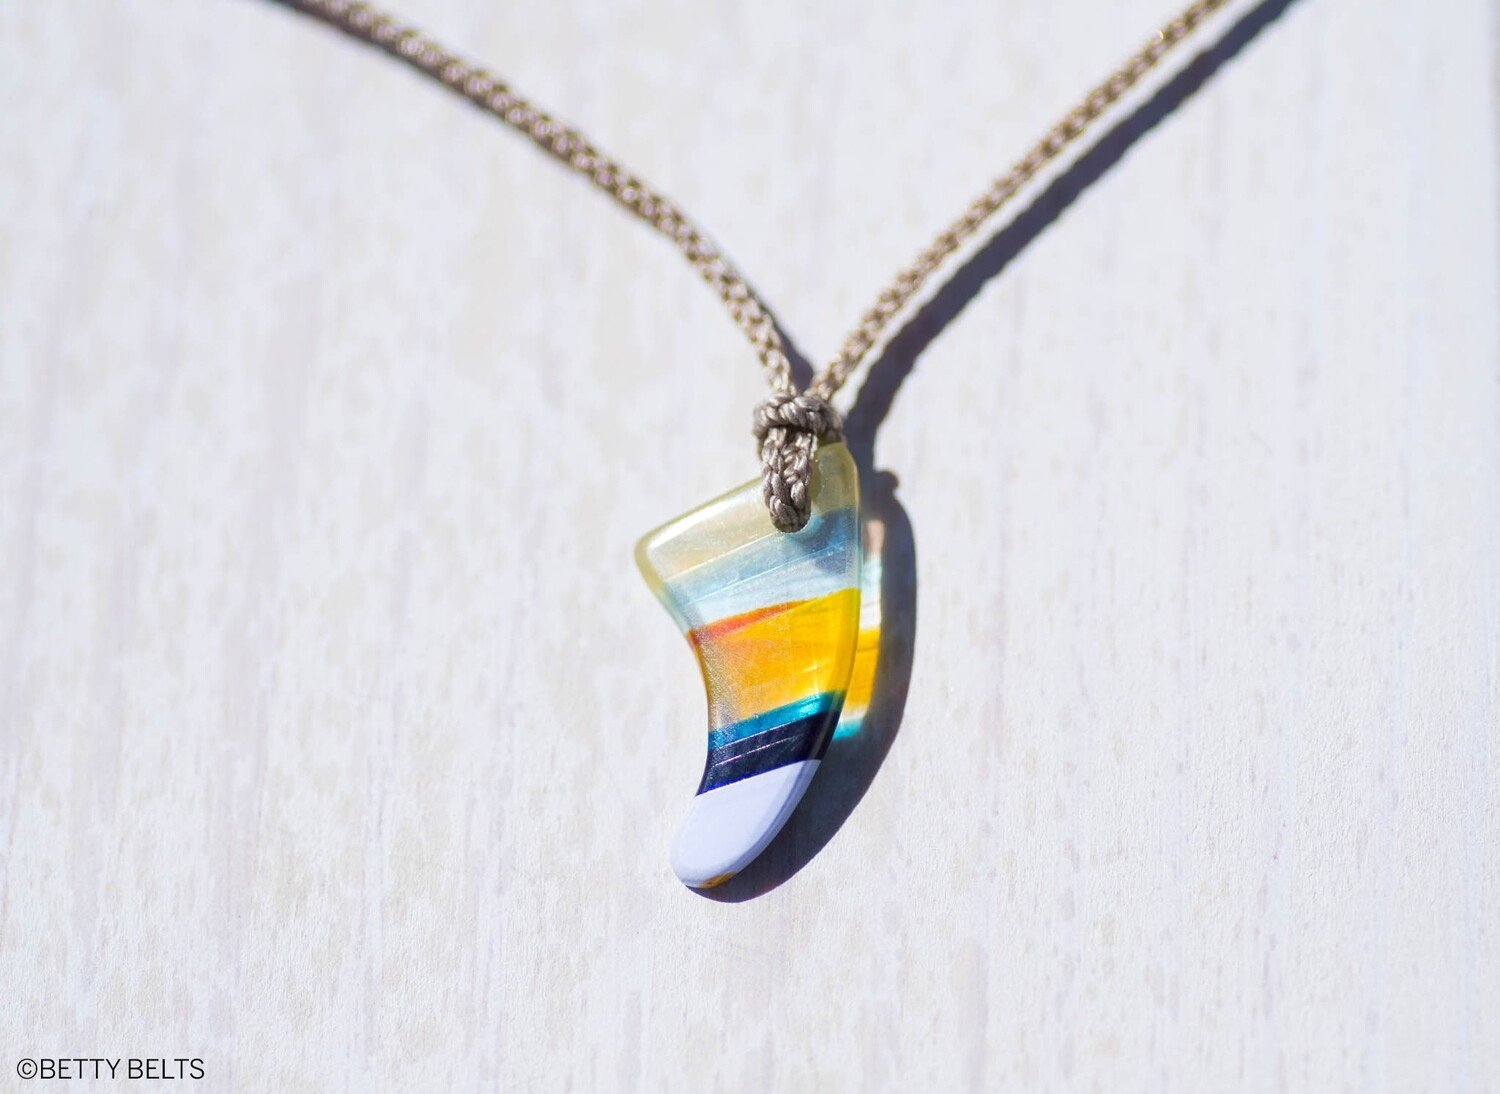 Upcycled Surfboard Resin Fin Charm on Braided Cord Necklace